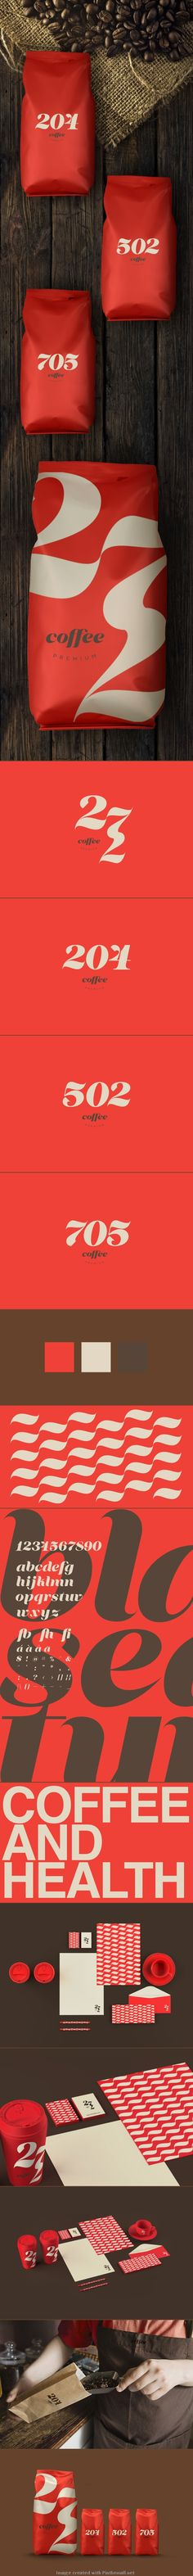 Type & Coffee | Concept of #identity and #packaging design | by Renan Vizzotto, Brazil | Ivan Giorgetti > Behance